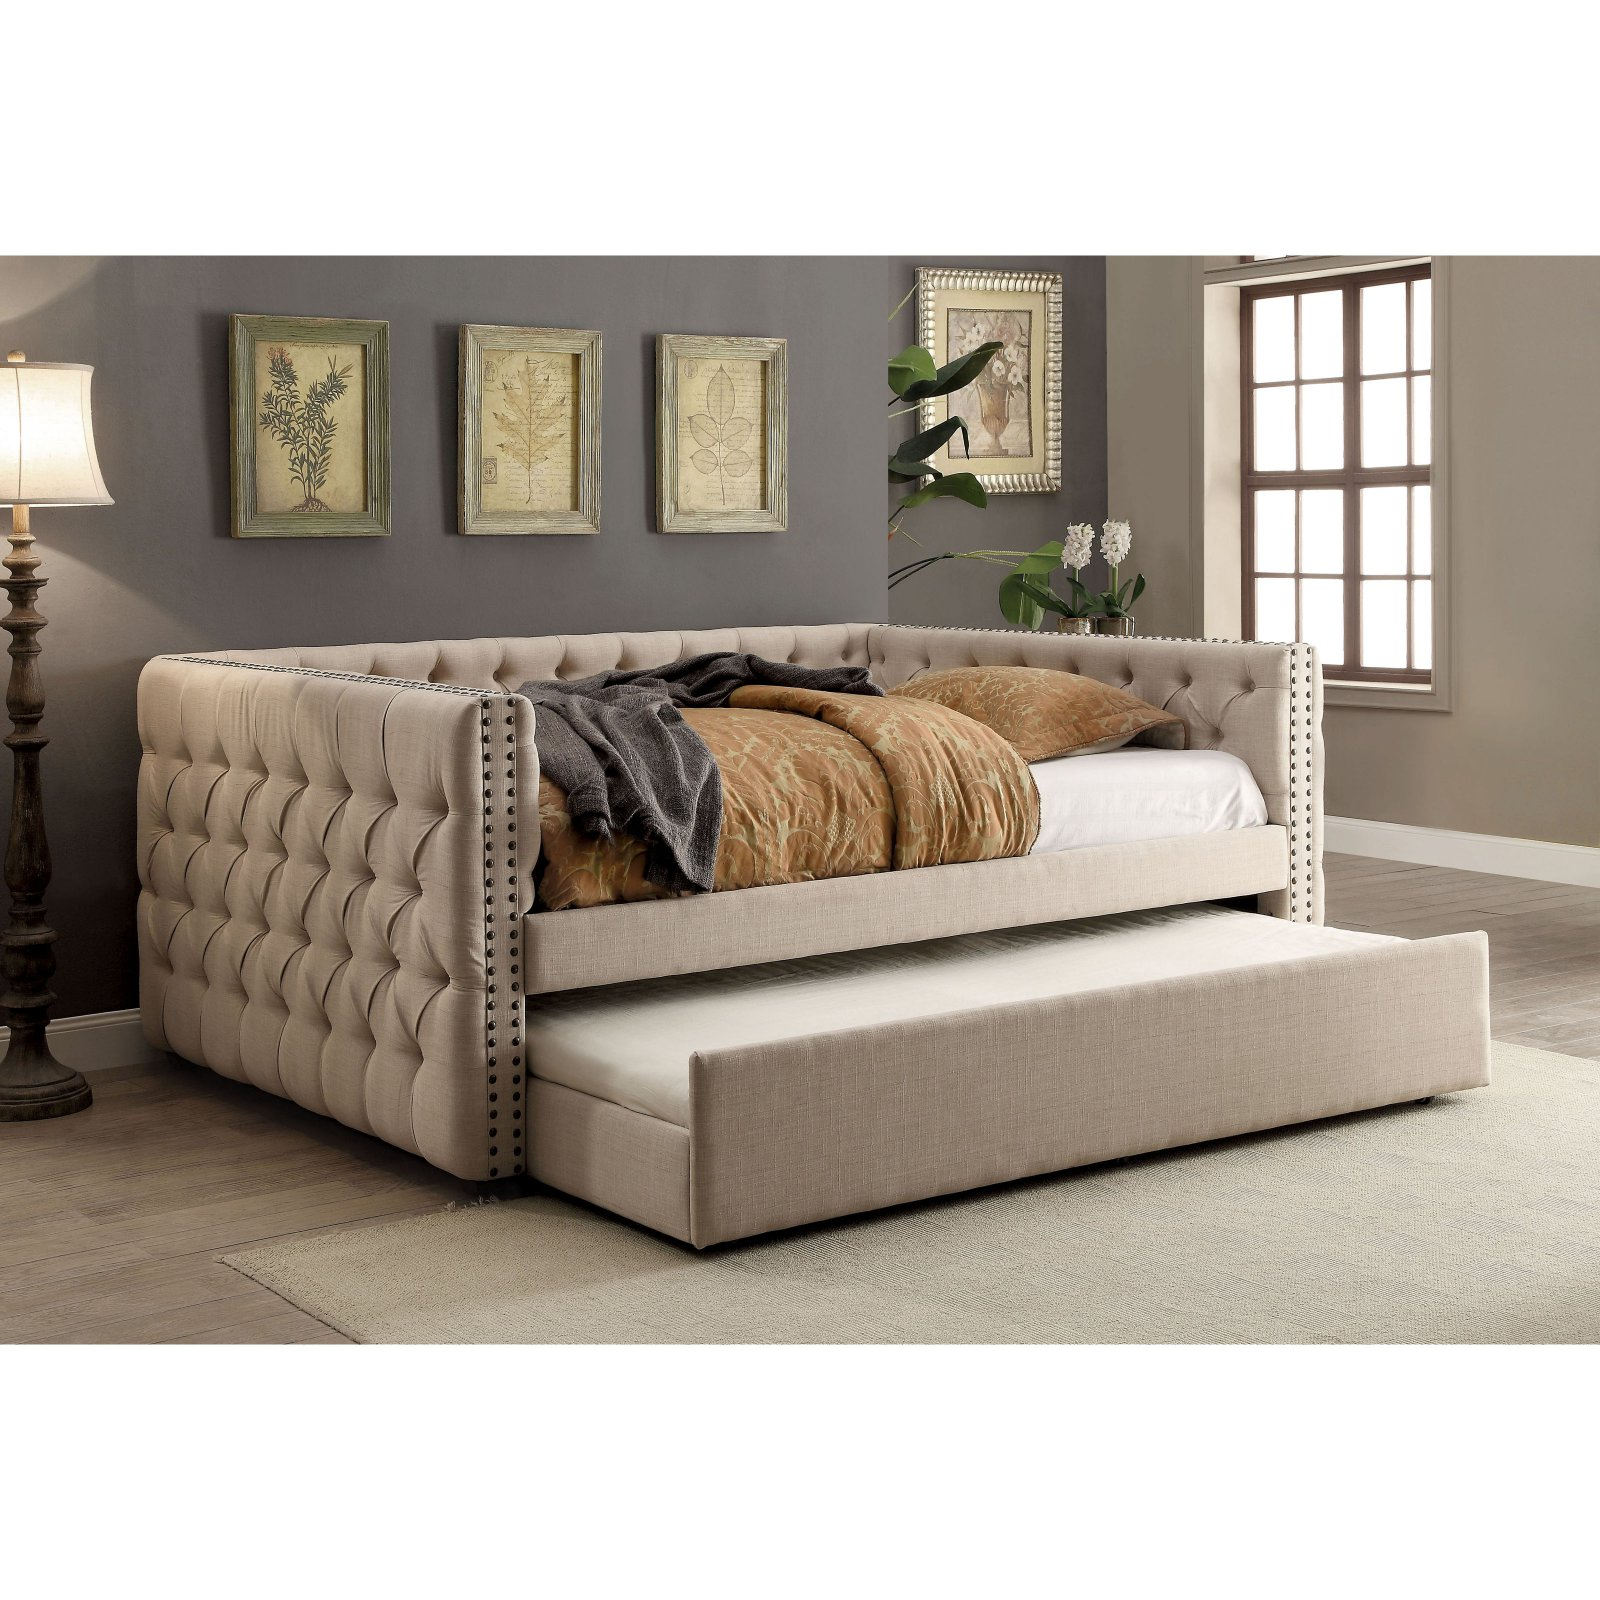 Furniture of America Cristina Contemporary Tufted Linen-Like Fabric Daybed